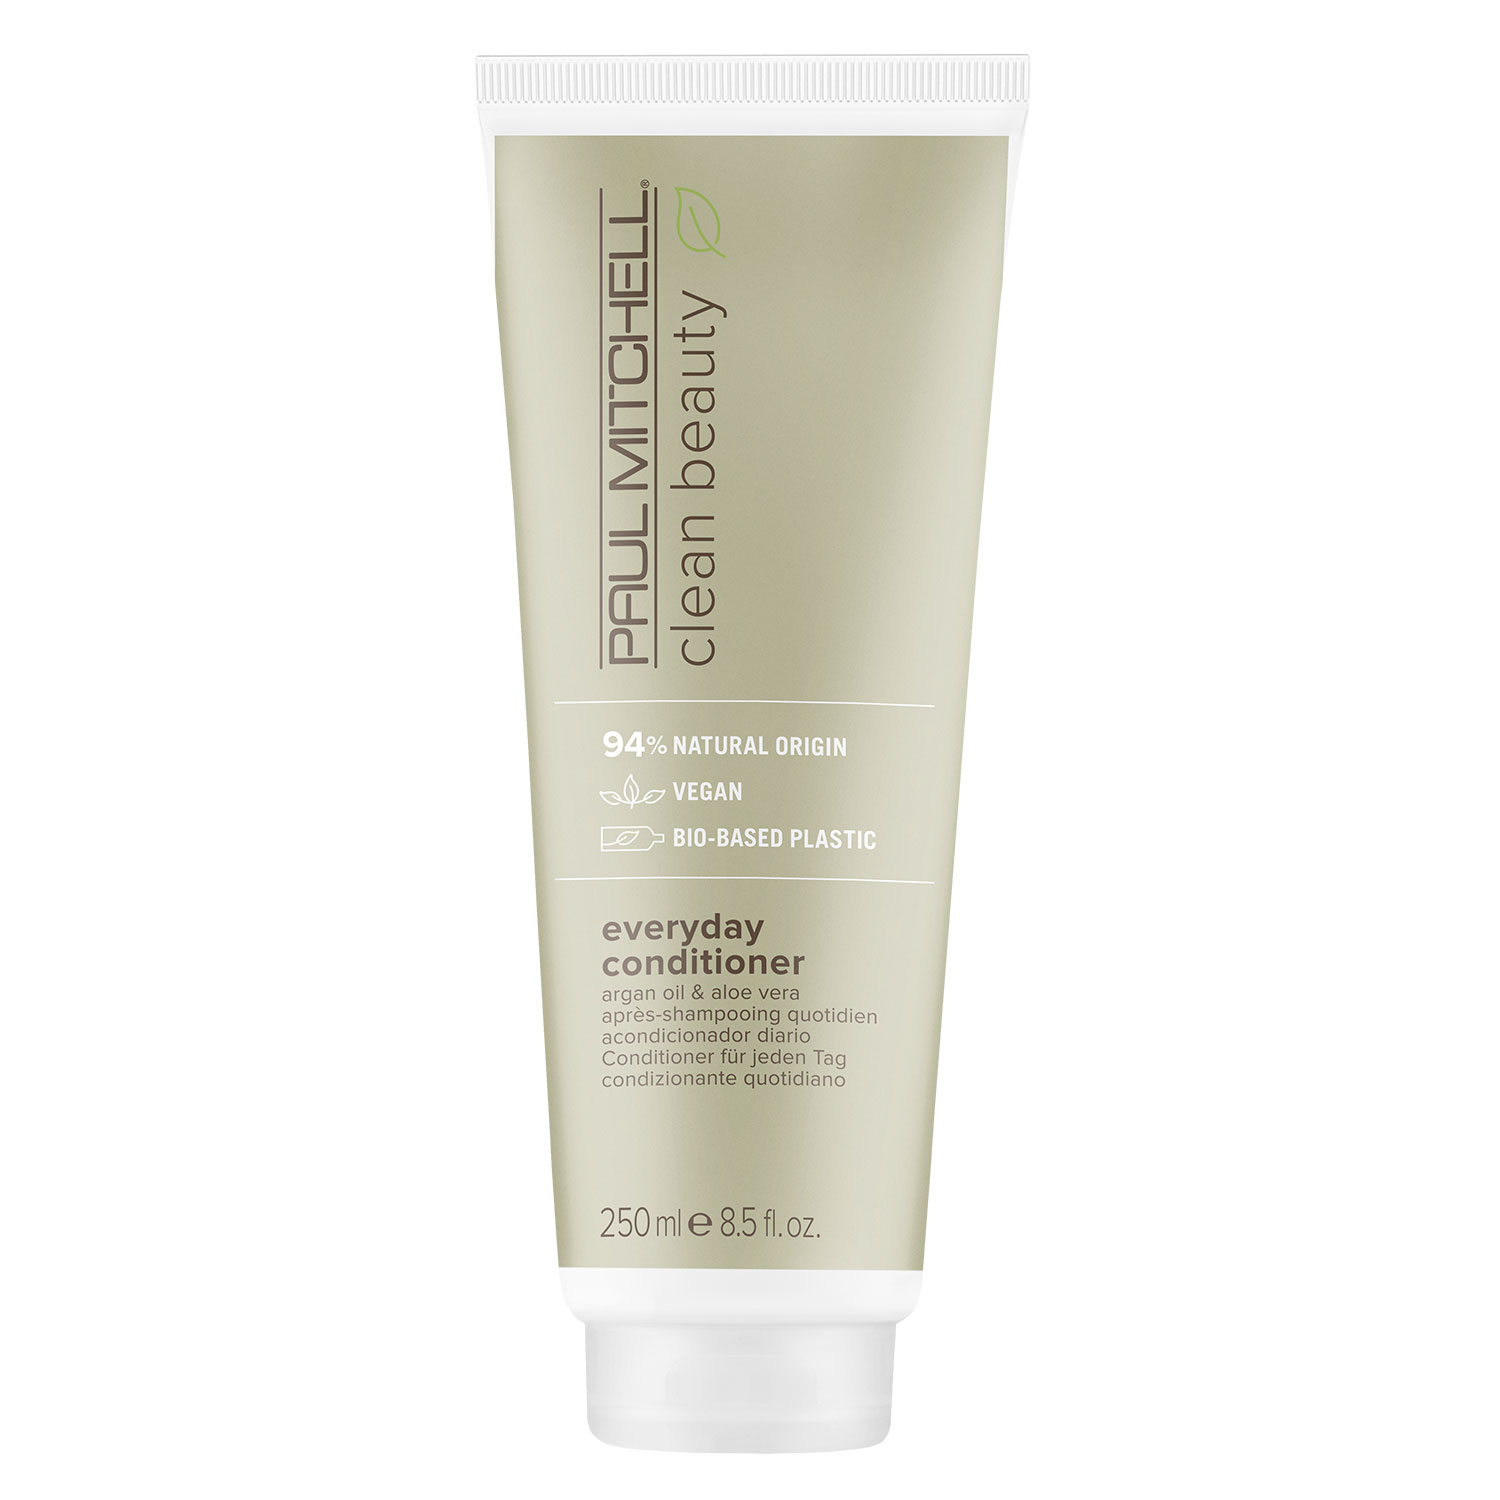 Paul Mitchell Clean Beauty - Everyday Conditioner